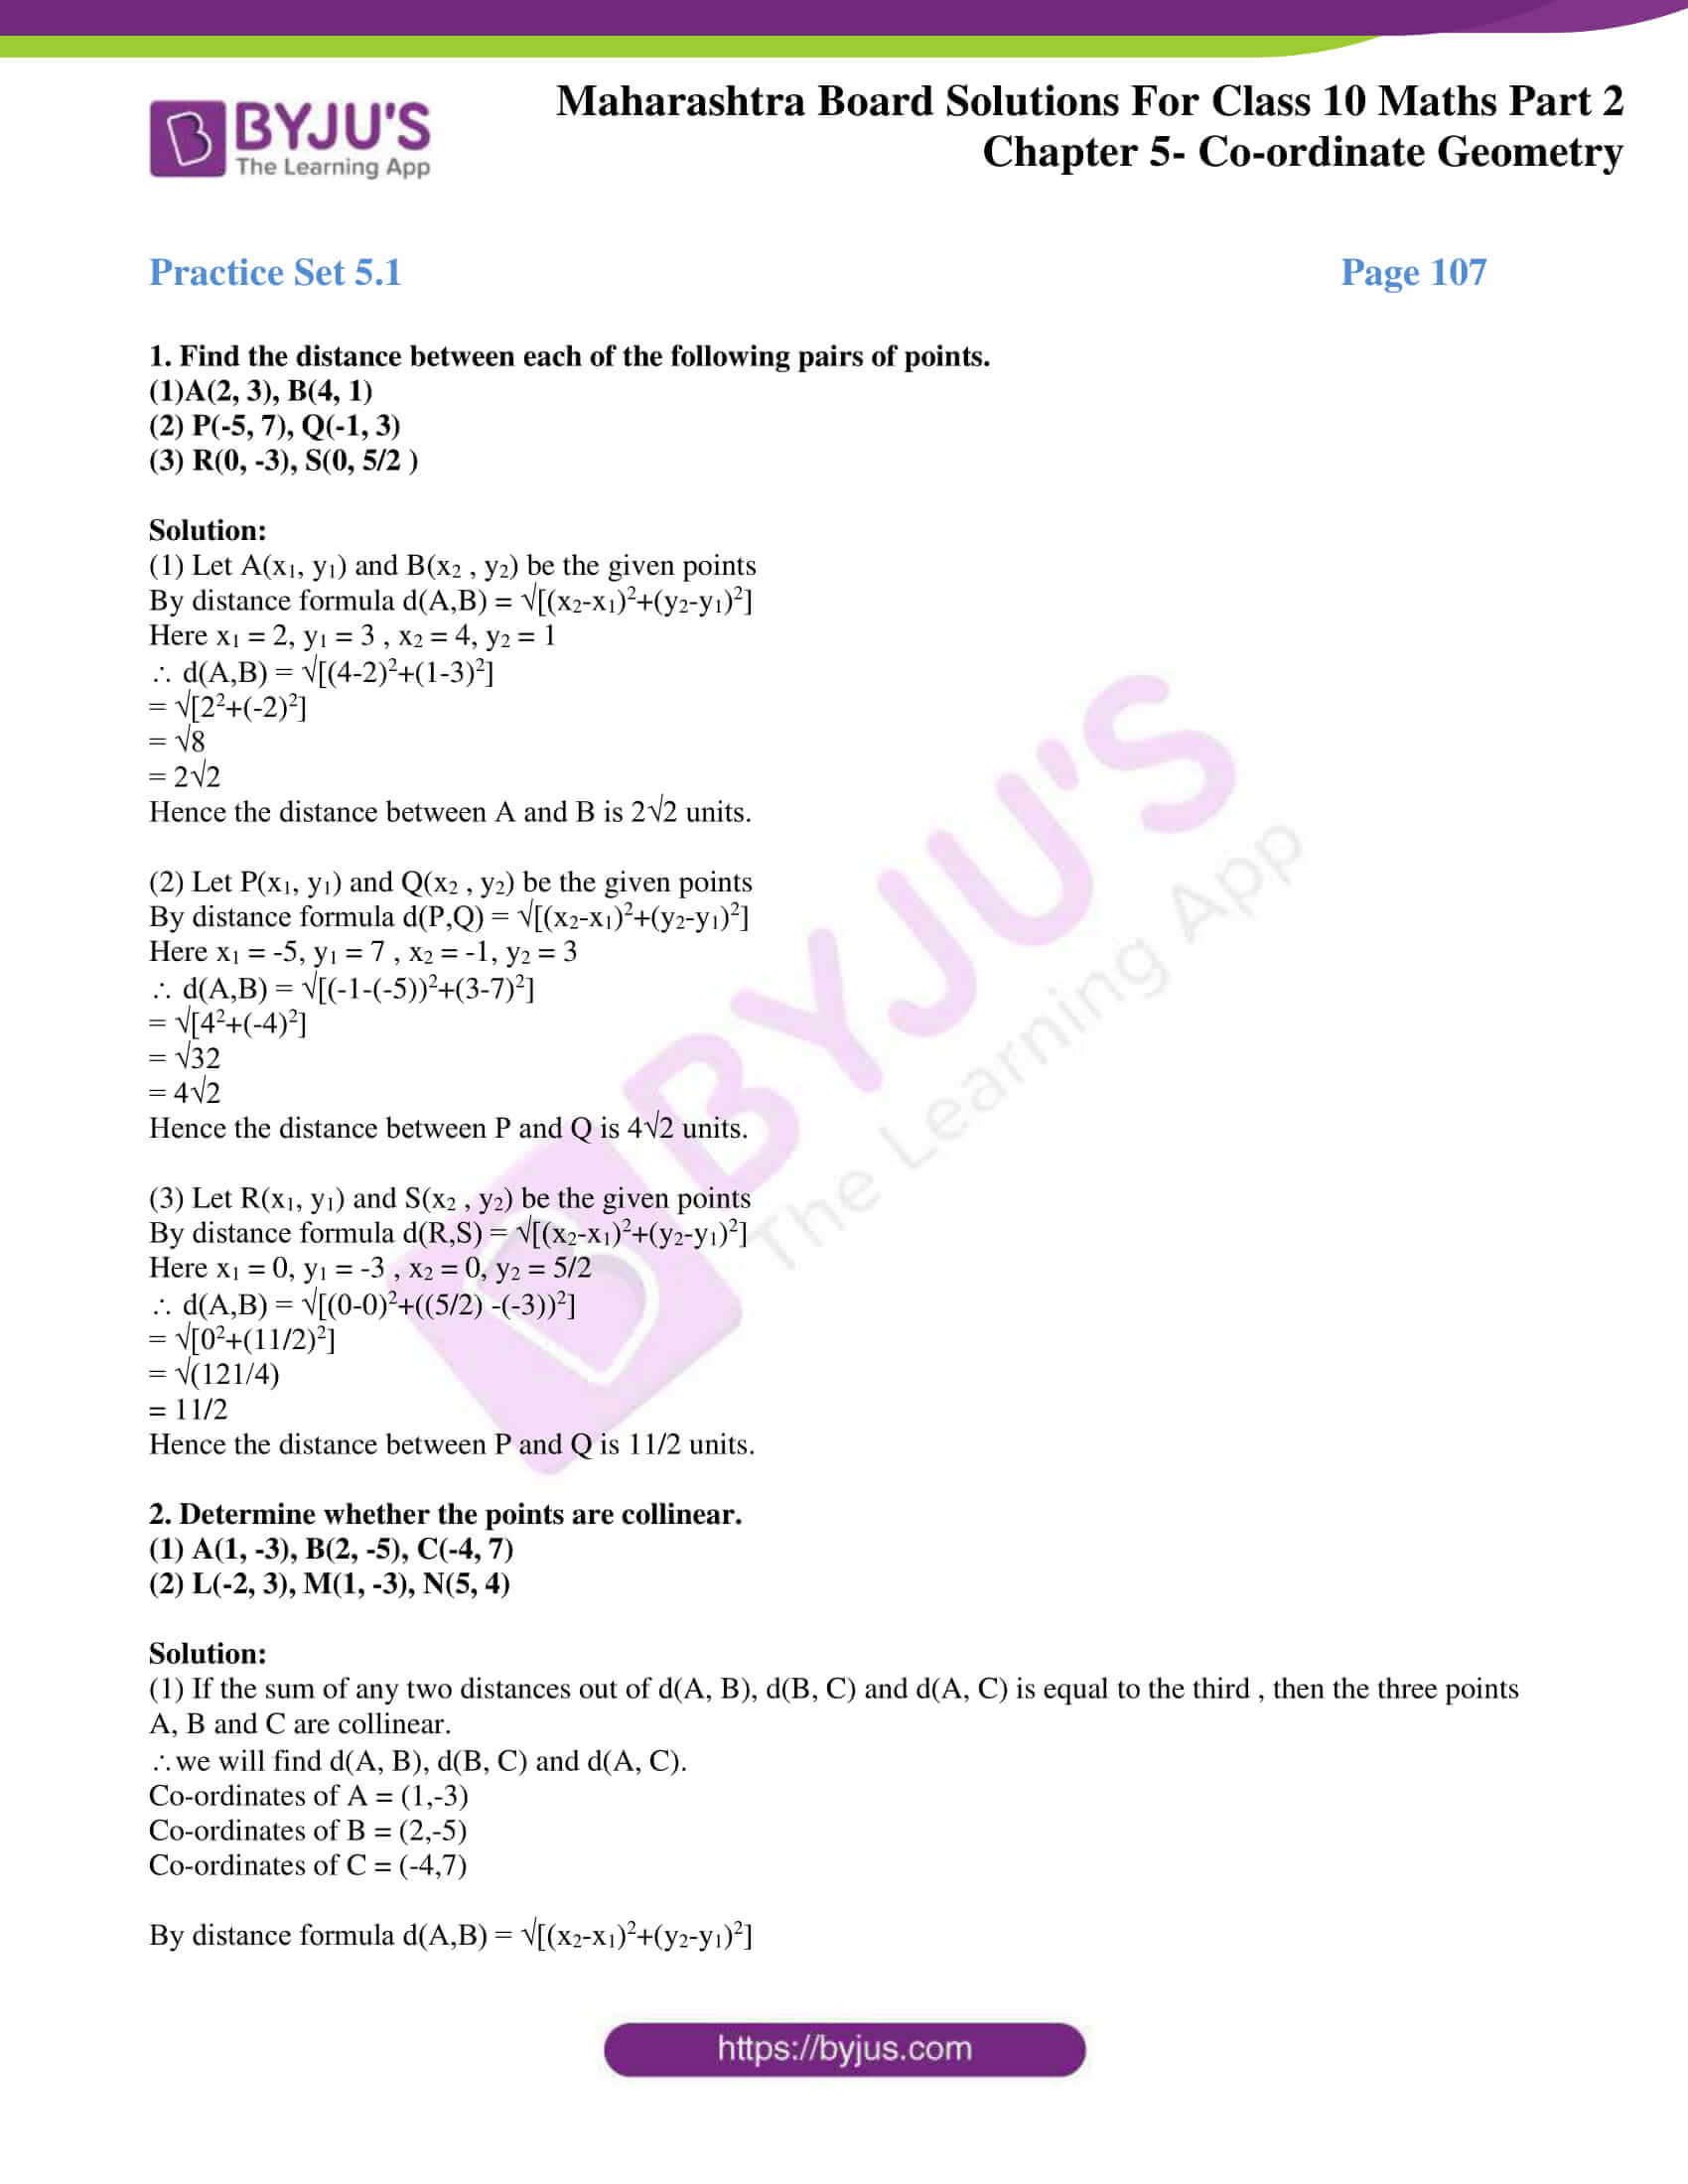 msbshse sol class 10 maths part 2 chapter 5 01